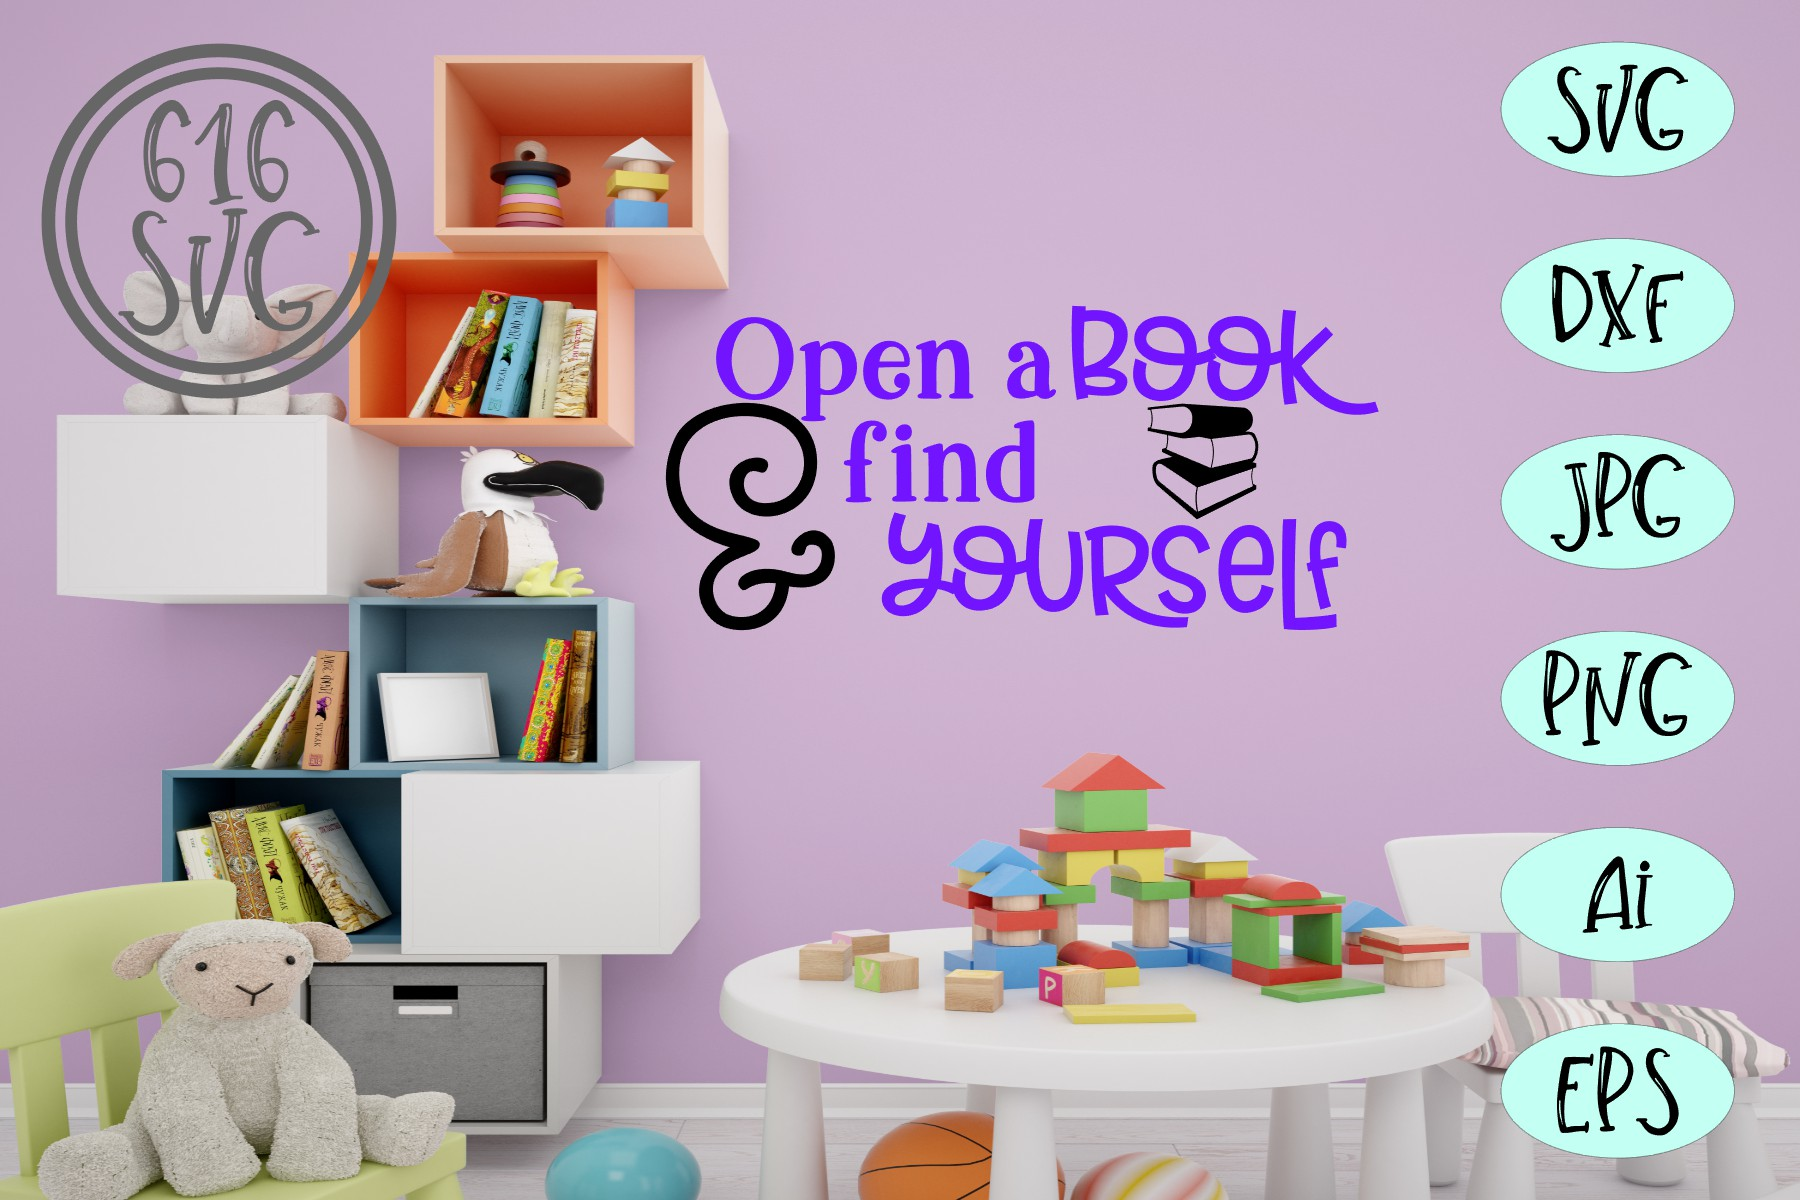 Childrens Library Bundle SVG, DXF, Ai, PNG example image 11